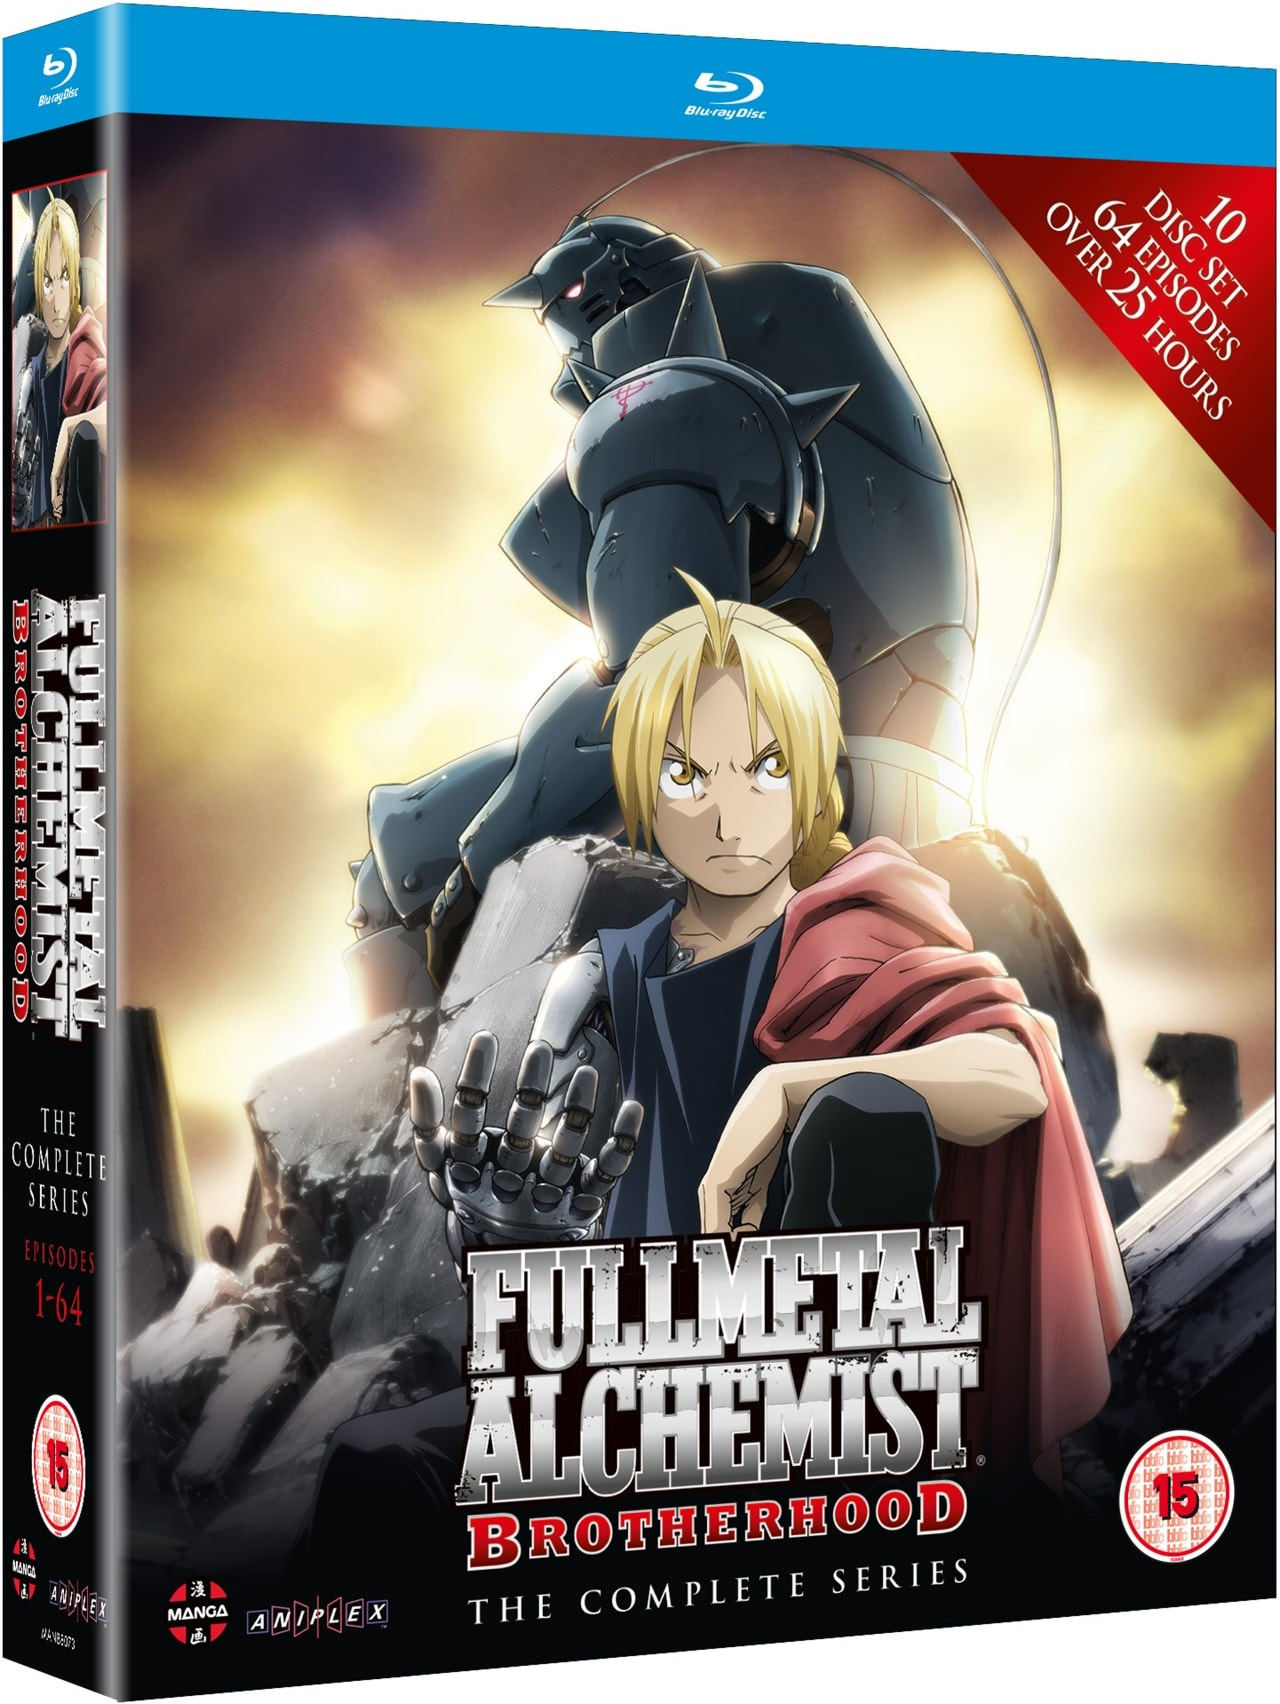 Fullmetal Alchemist Brotherhood: The Complete Series - 2